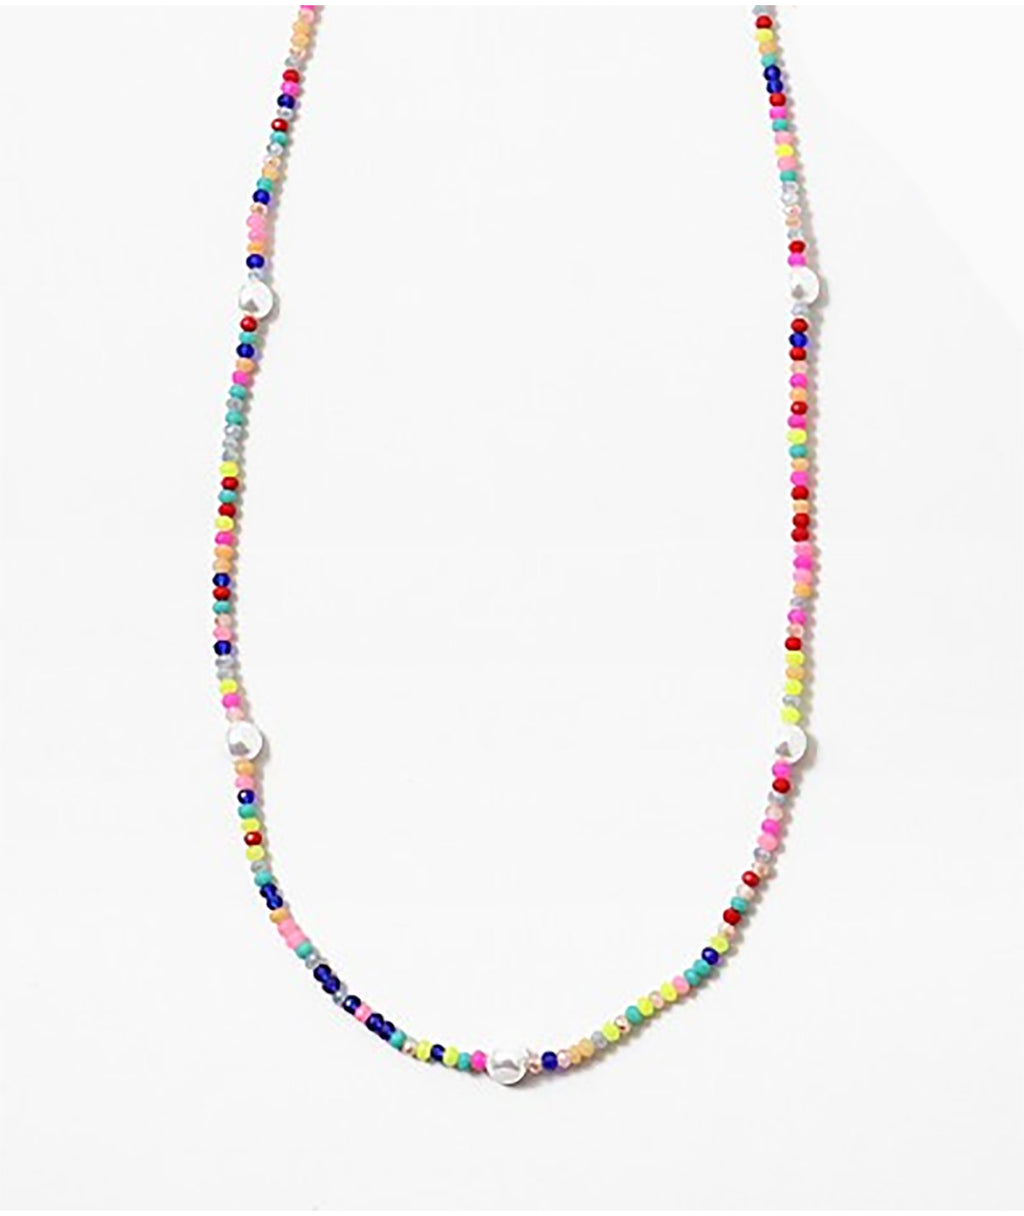 Fashionista J Neon Rainbow Pearl Necklace